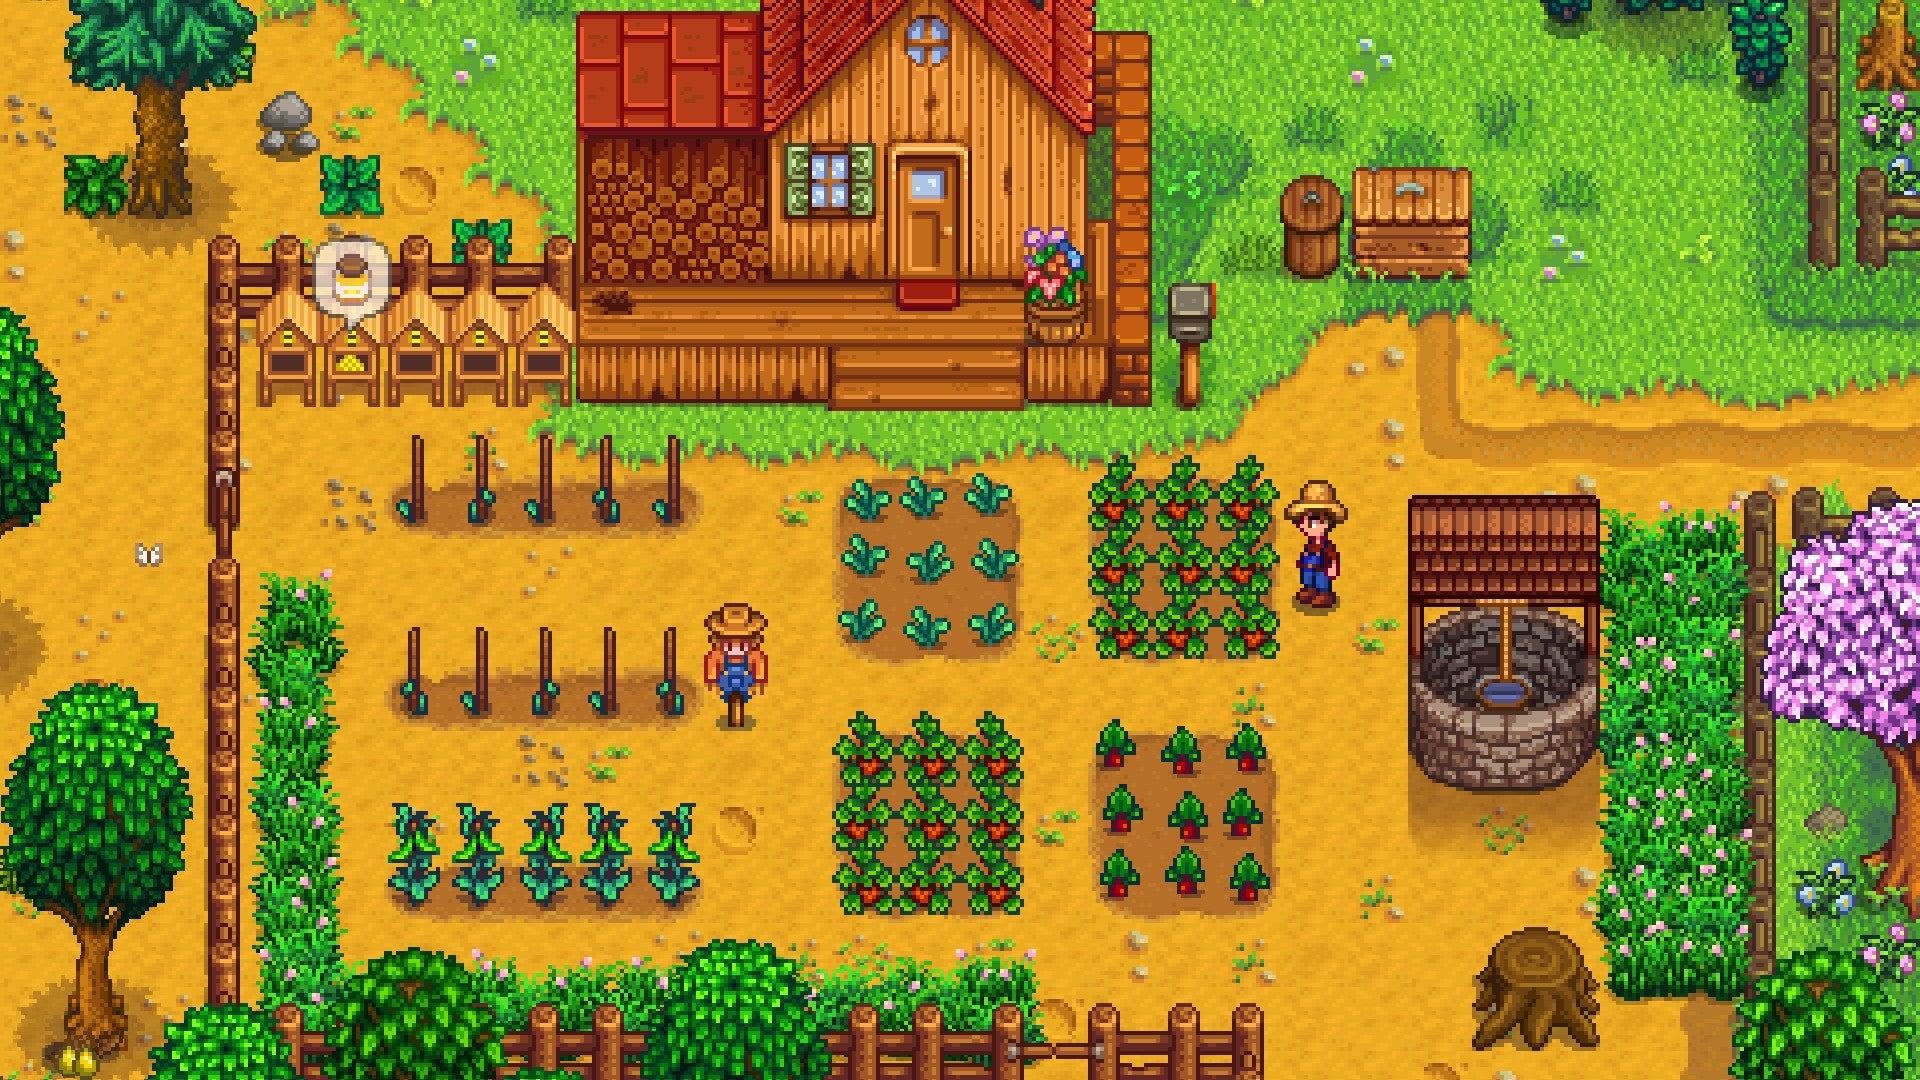 The Past, Present, And Future Of Stardew Valley